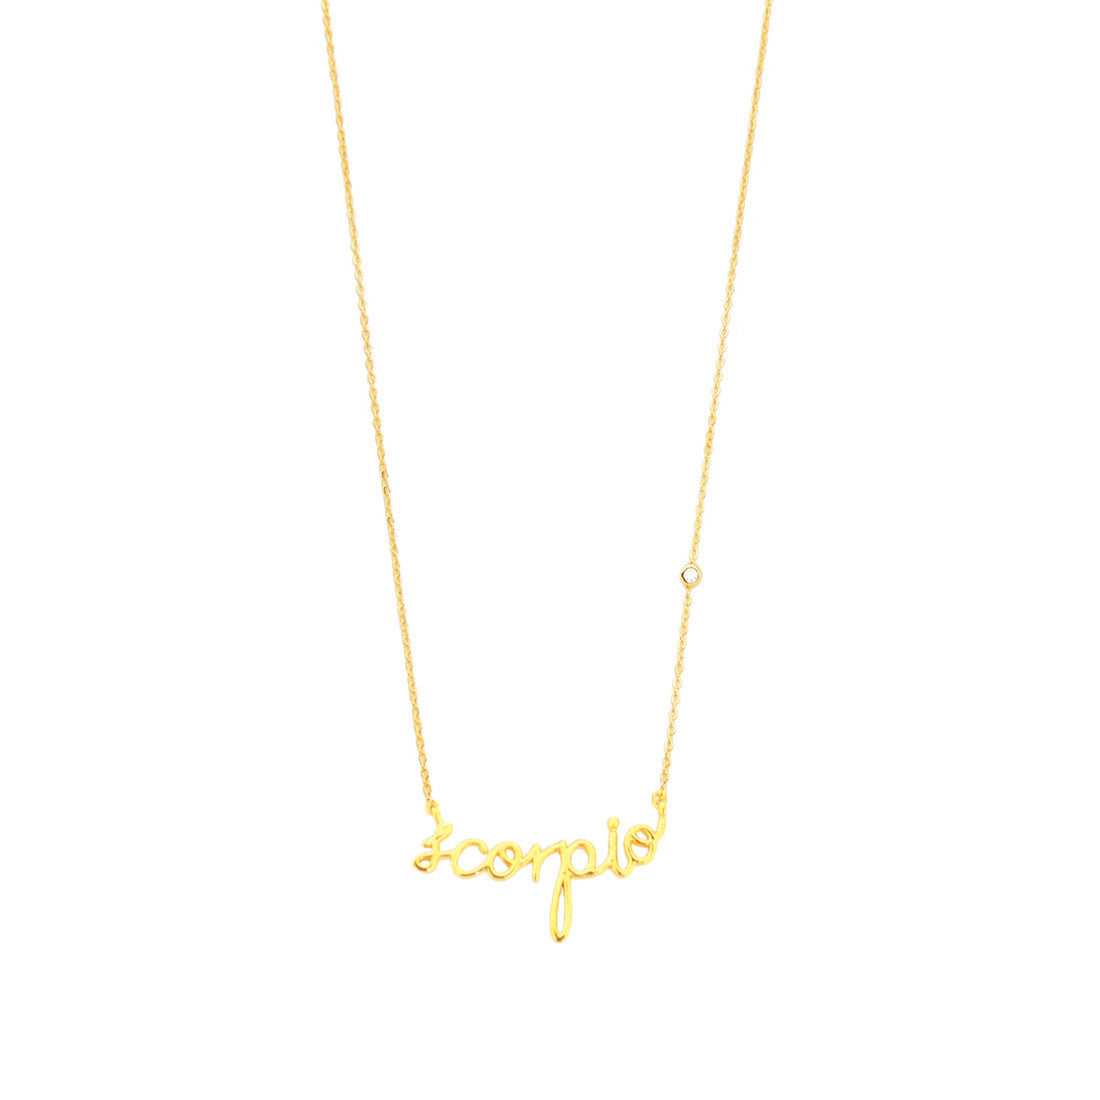 ZODIAC NAMEPLATE NECKLACES